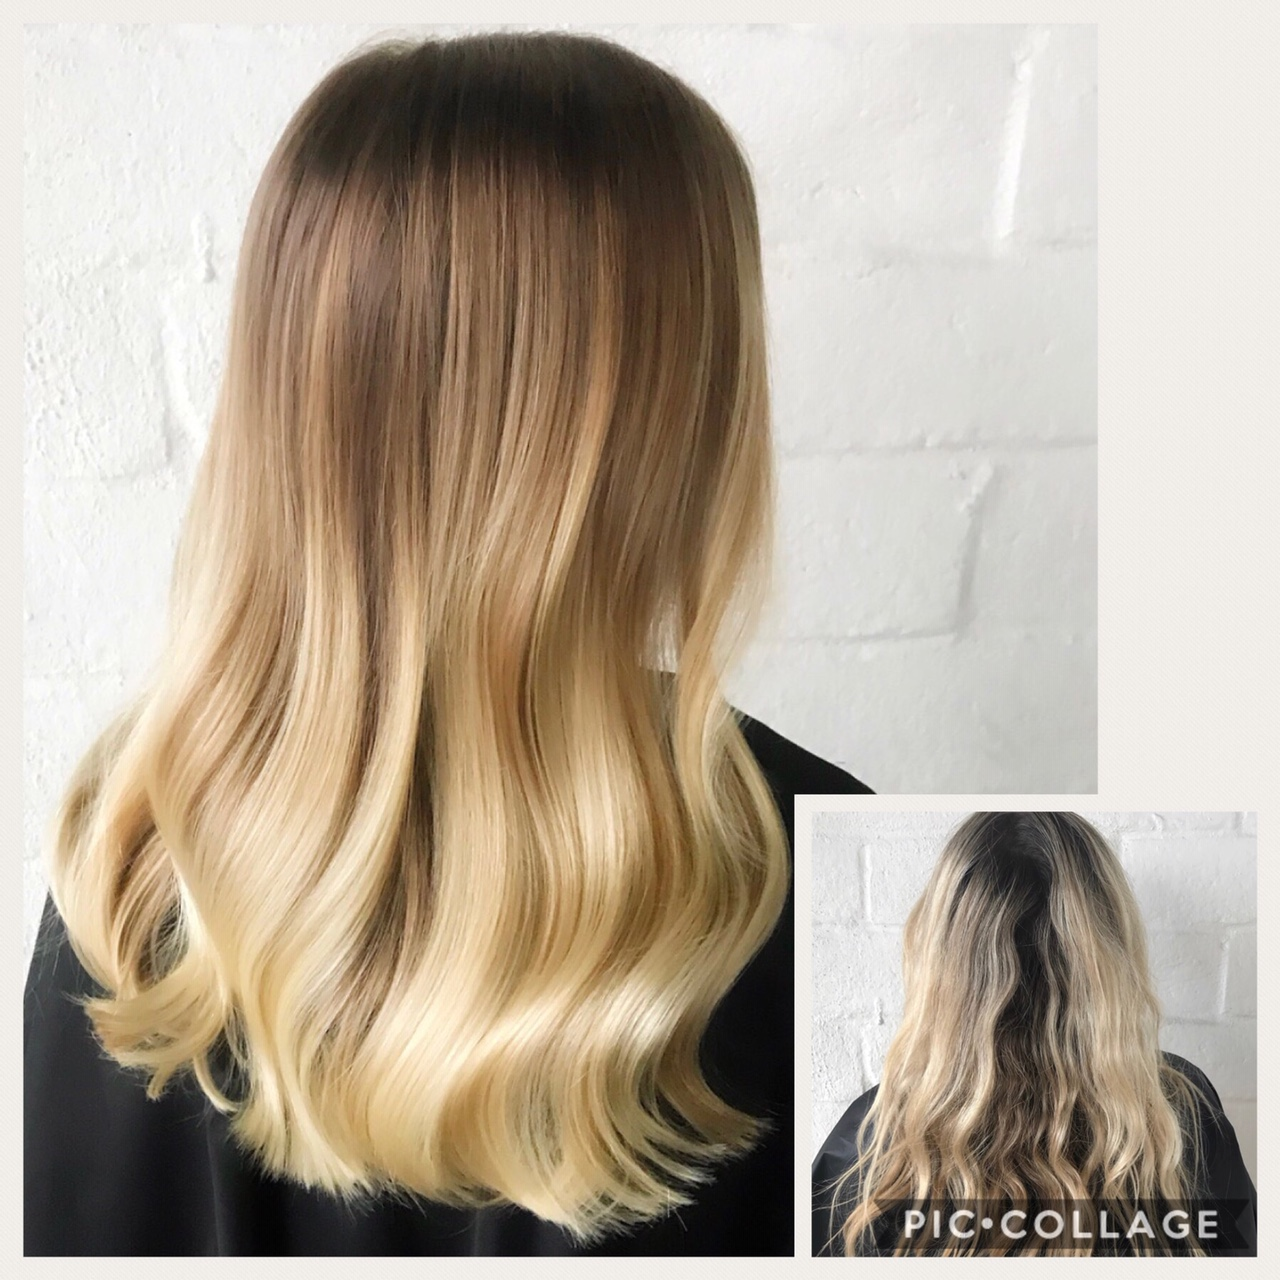 Before and After image of long blonde hair extensions fading from top to bottom-hair salon solana beach -Salon LG-+1 858 344 7865.